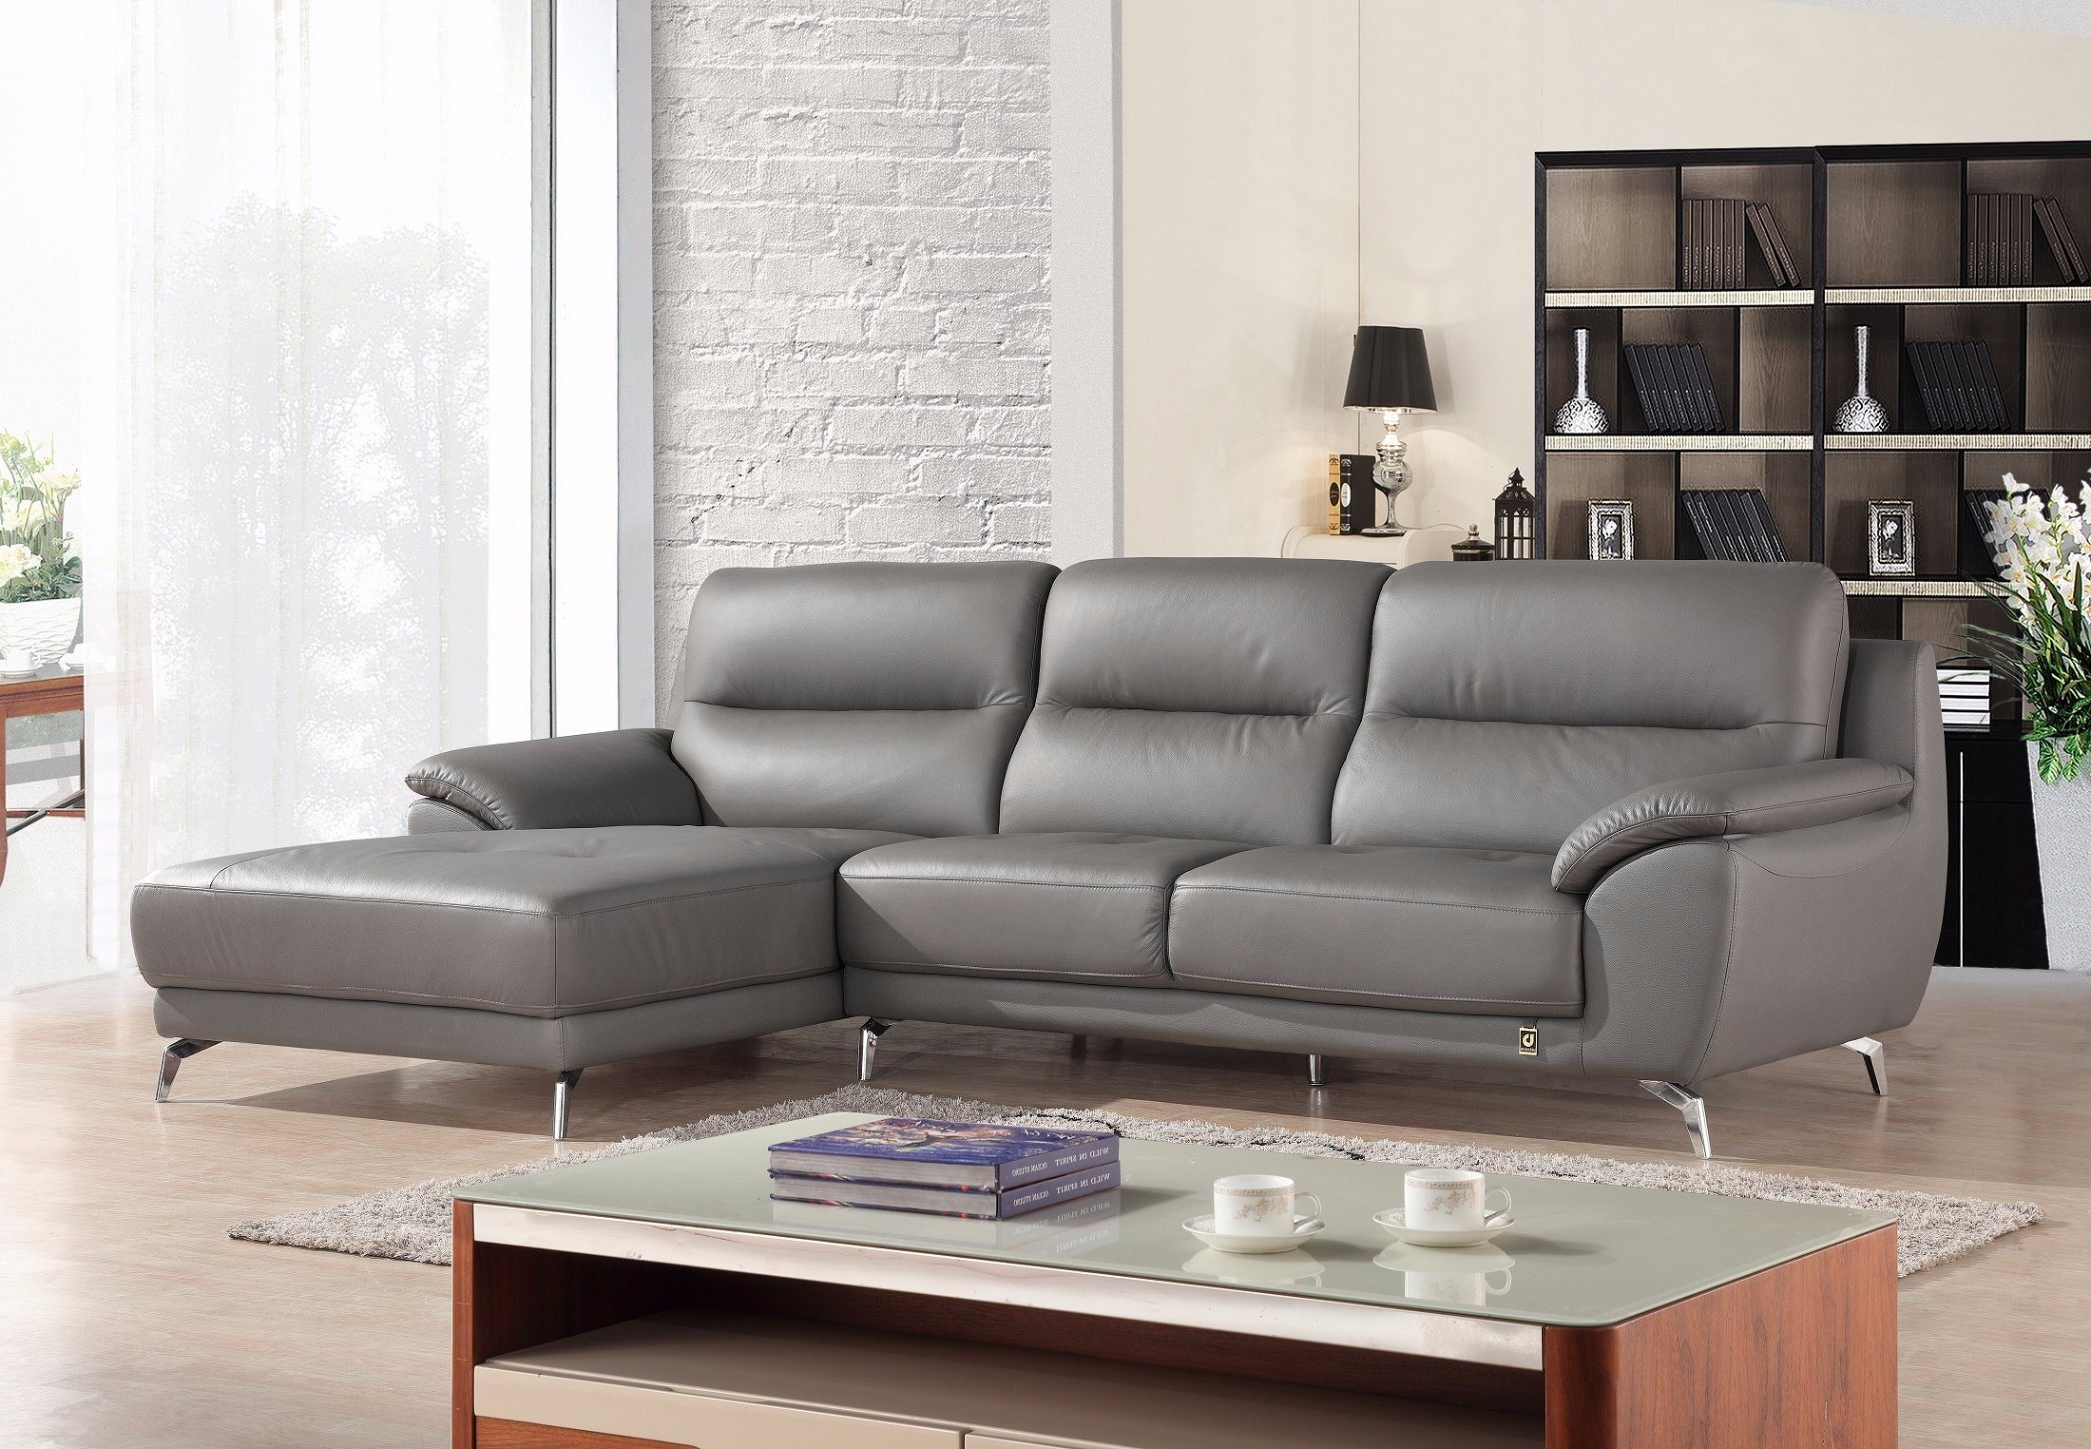 China European Modern Big L Shape Sectional Leather Sofa Inside 2018 Owego L Shaped Sectional Sofas (View 2 of 20)